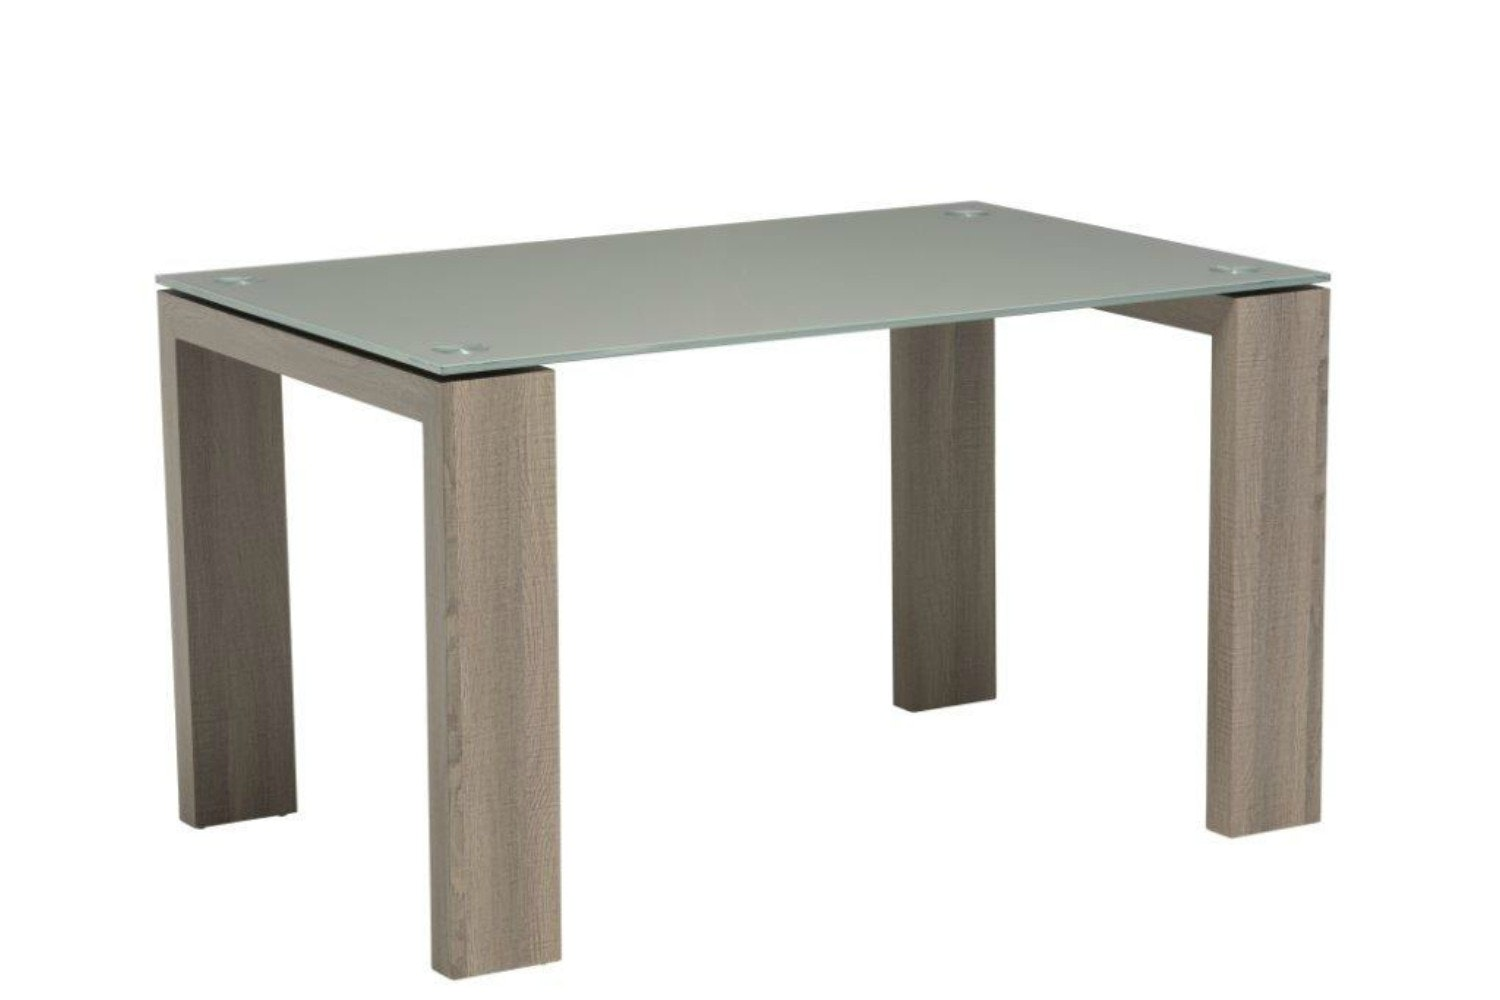 Ryder Dining Table 1.3 | Grey